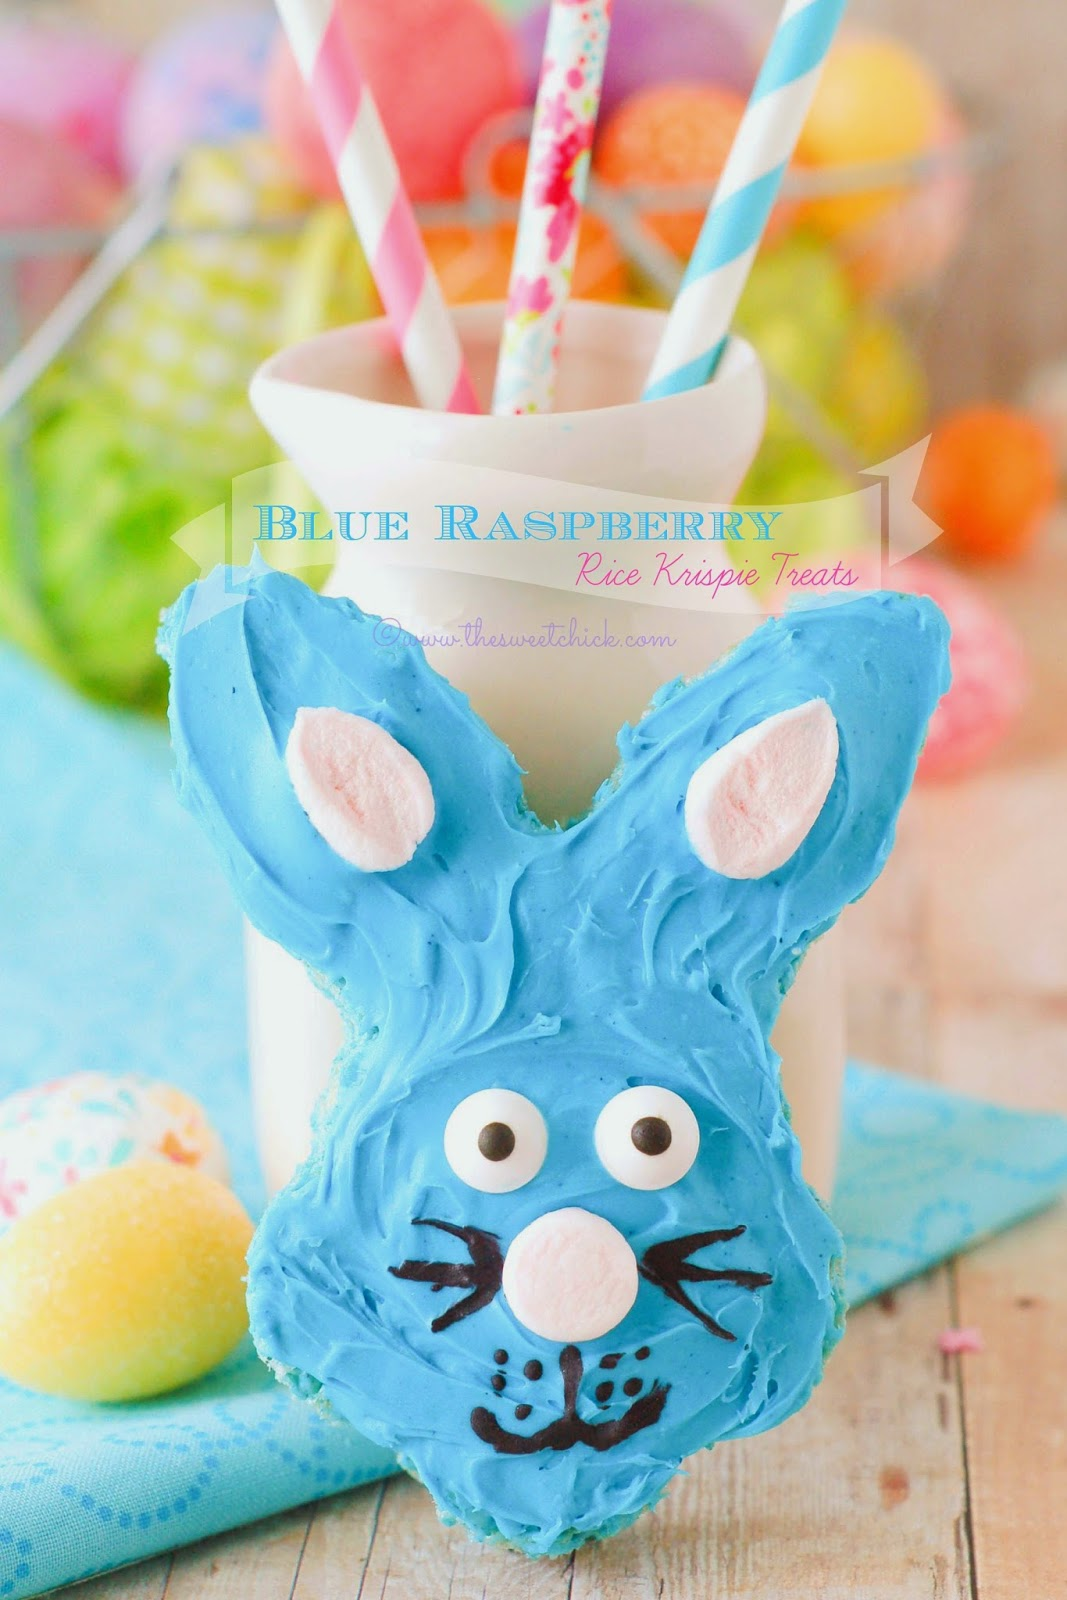 Blue Raspberry Rice Krispie Bunny by The Sweet Chick